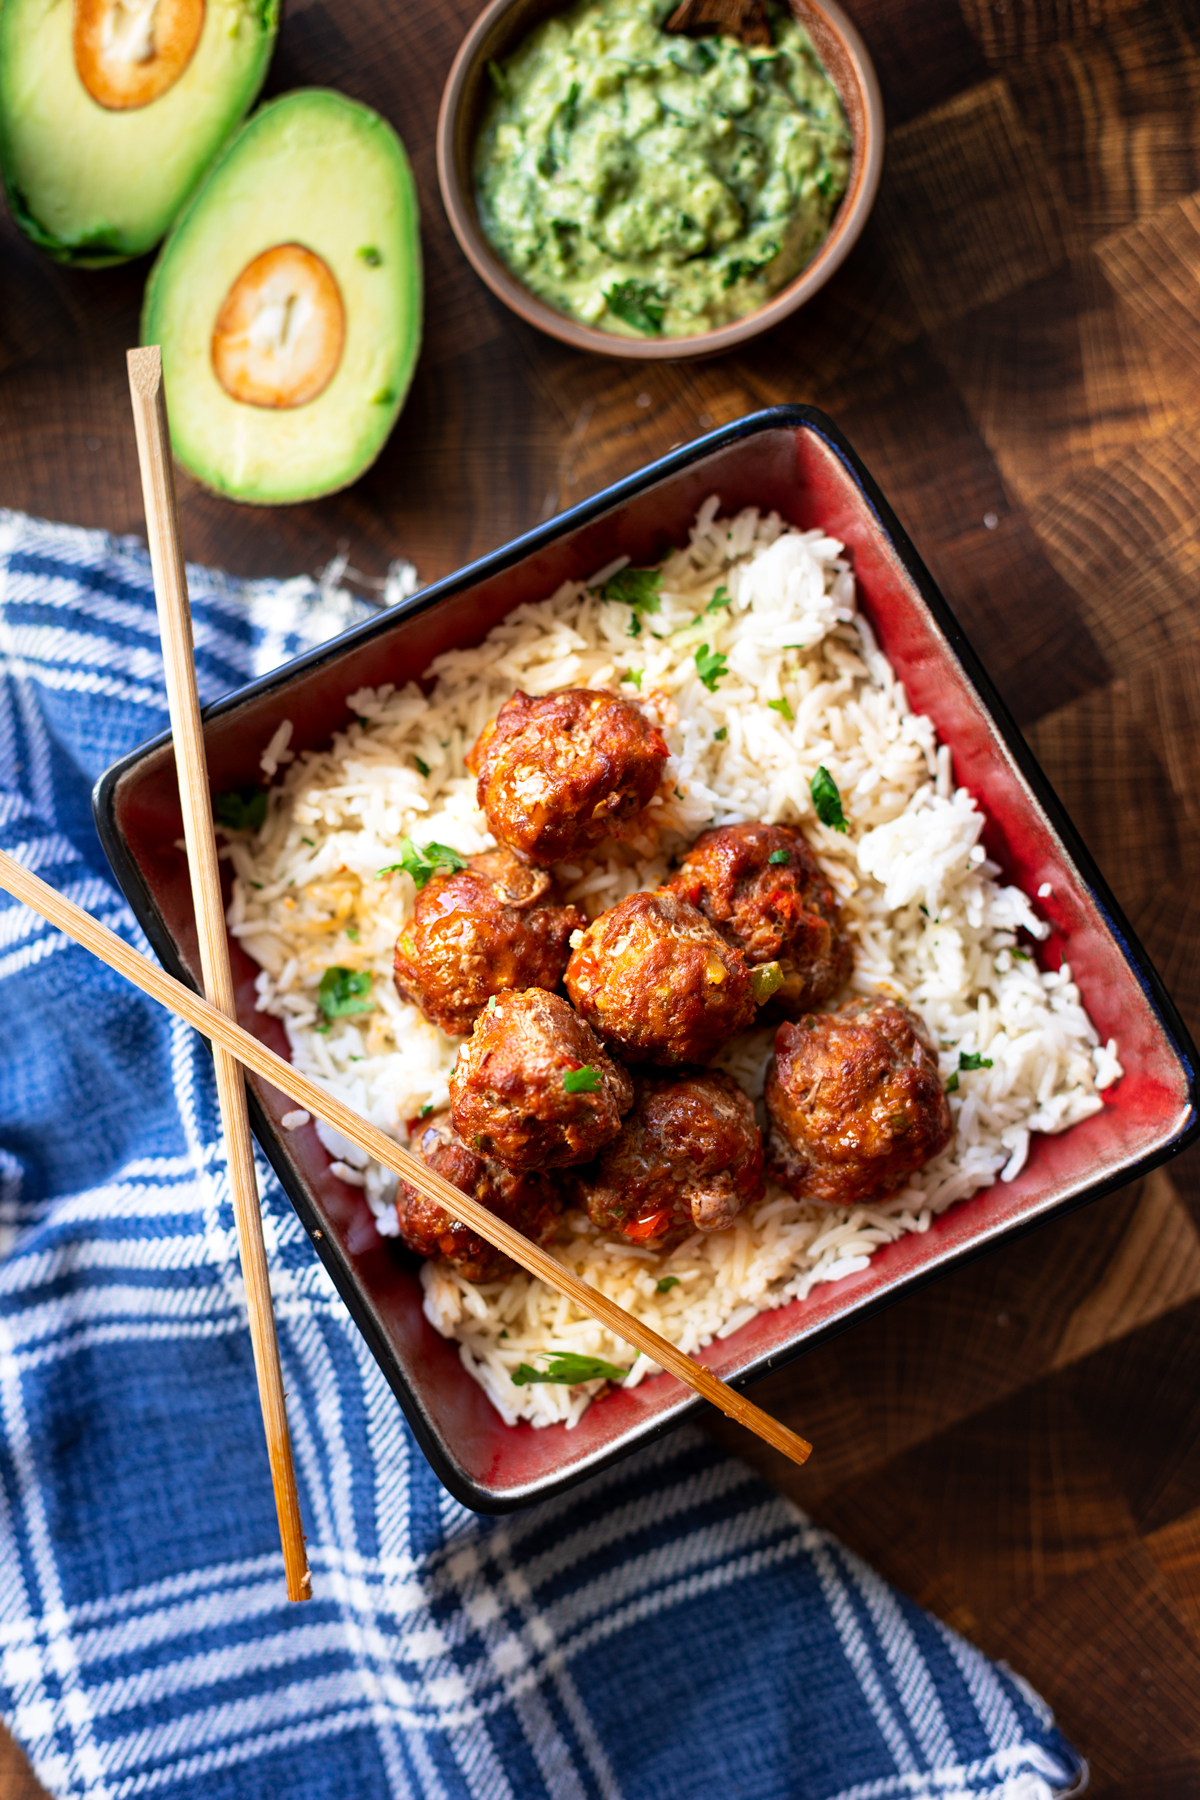 Meatballs in a bowl in a bed of rice, chopsticks on bowl.